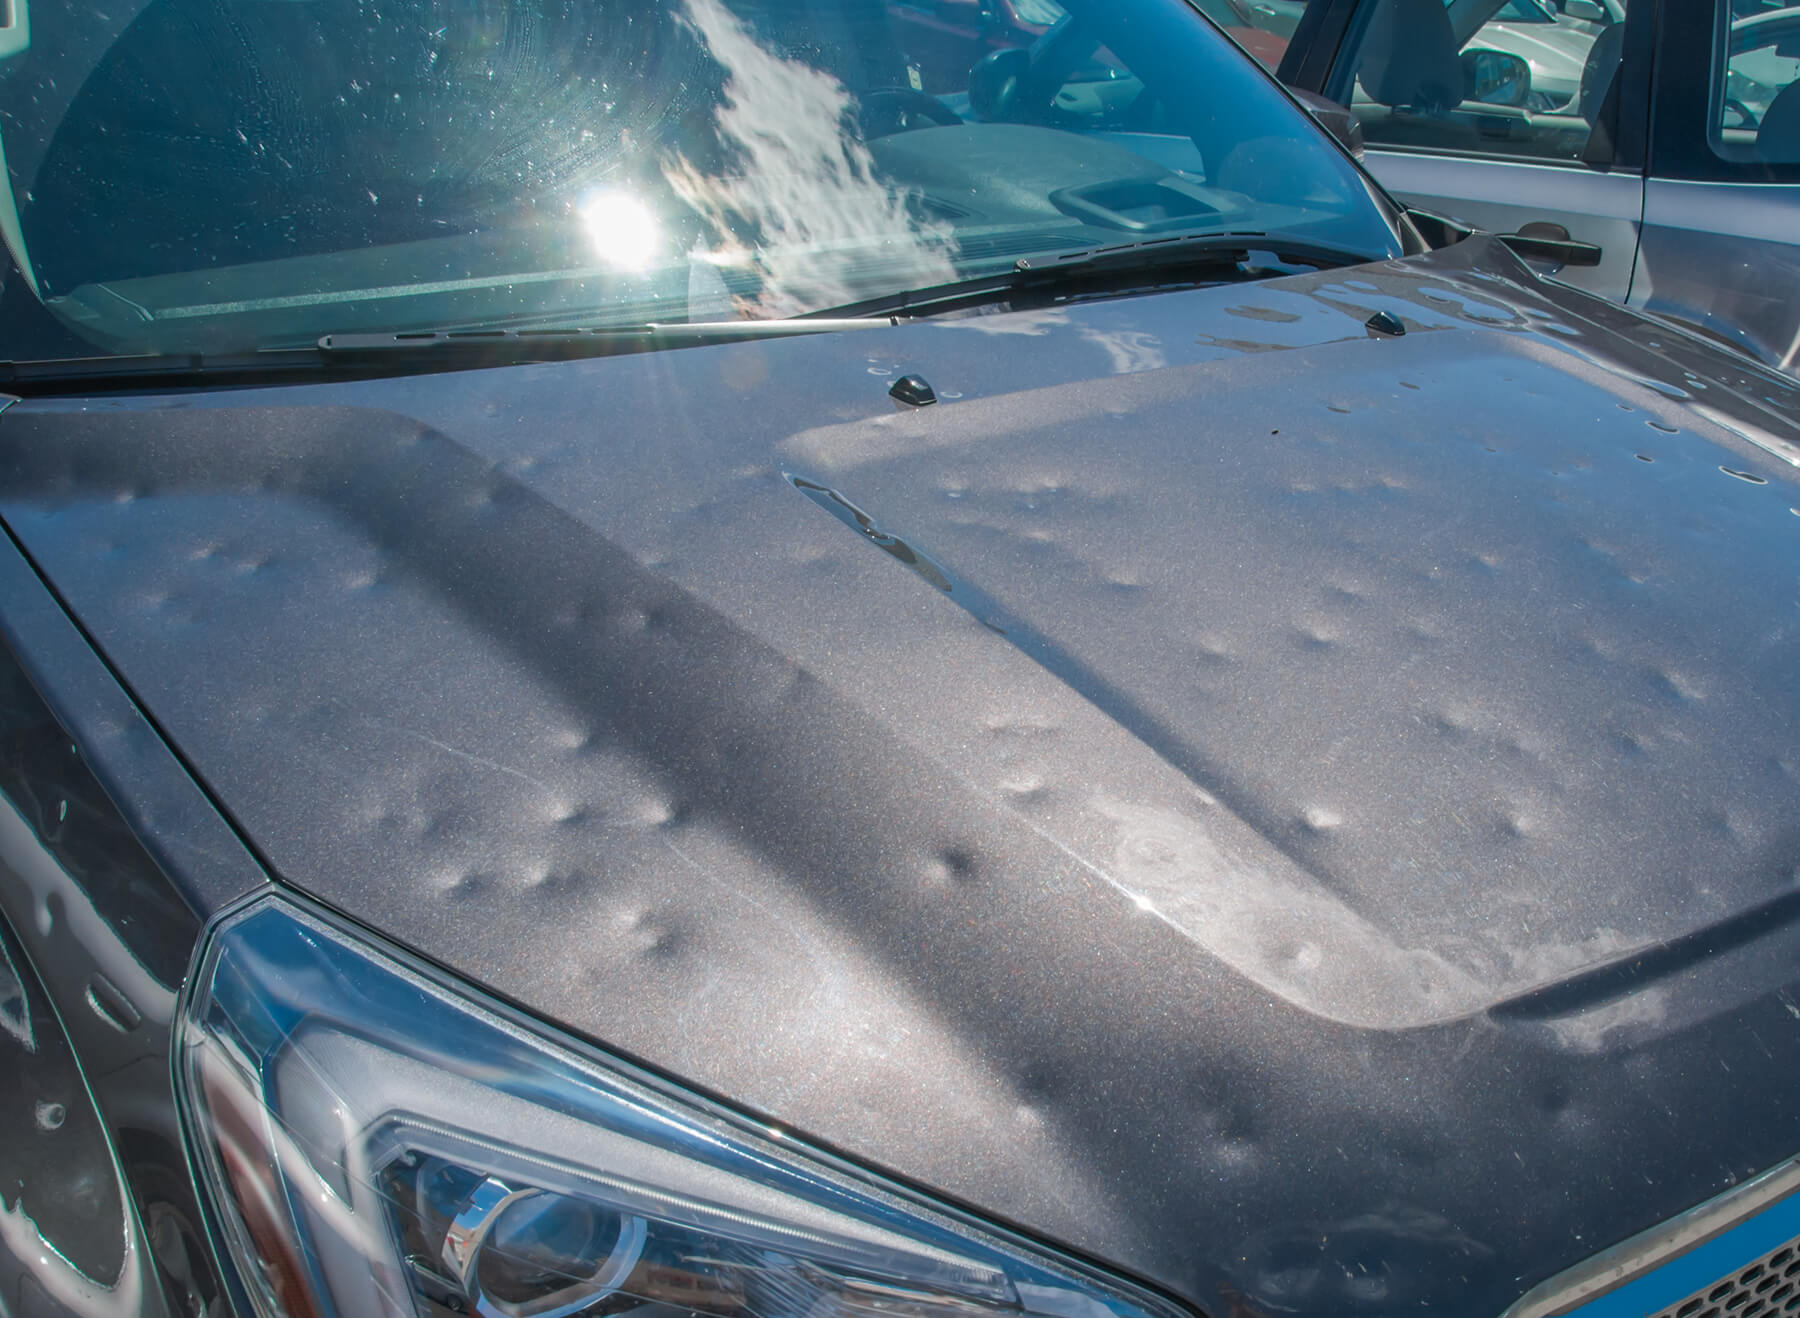 Vehicle after a hail storm